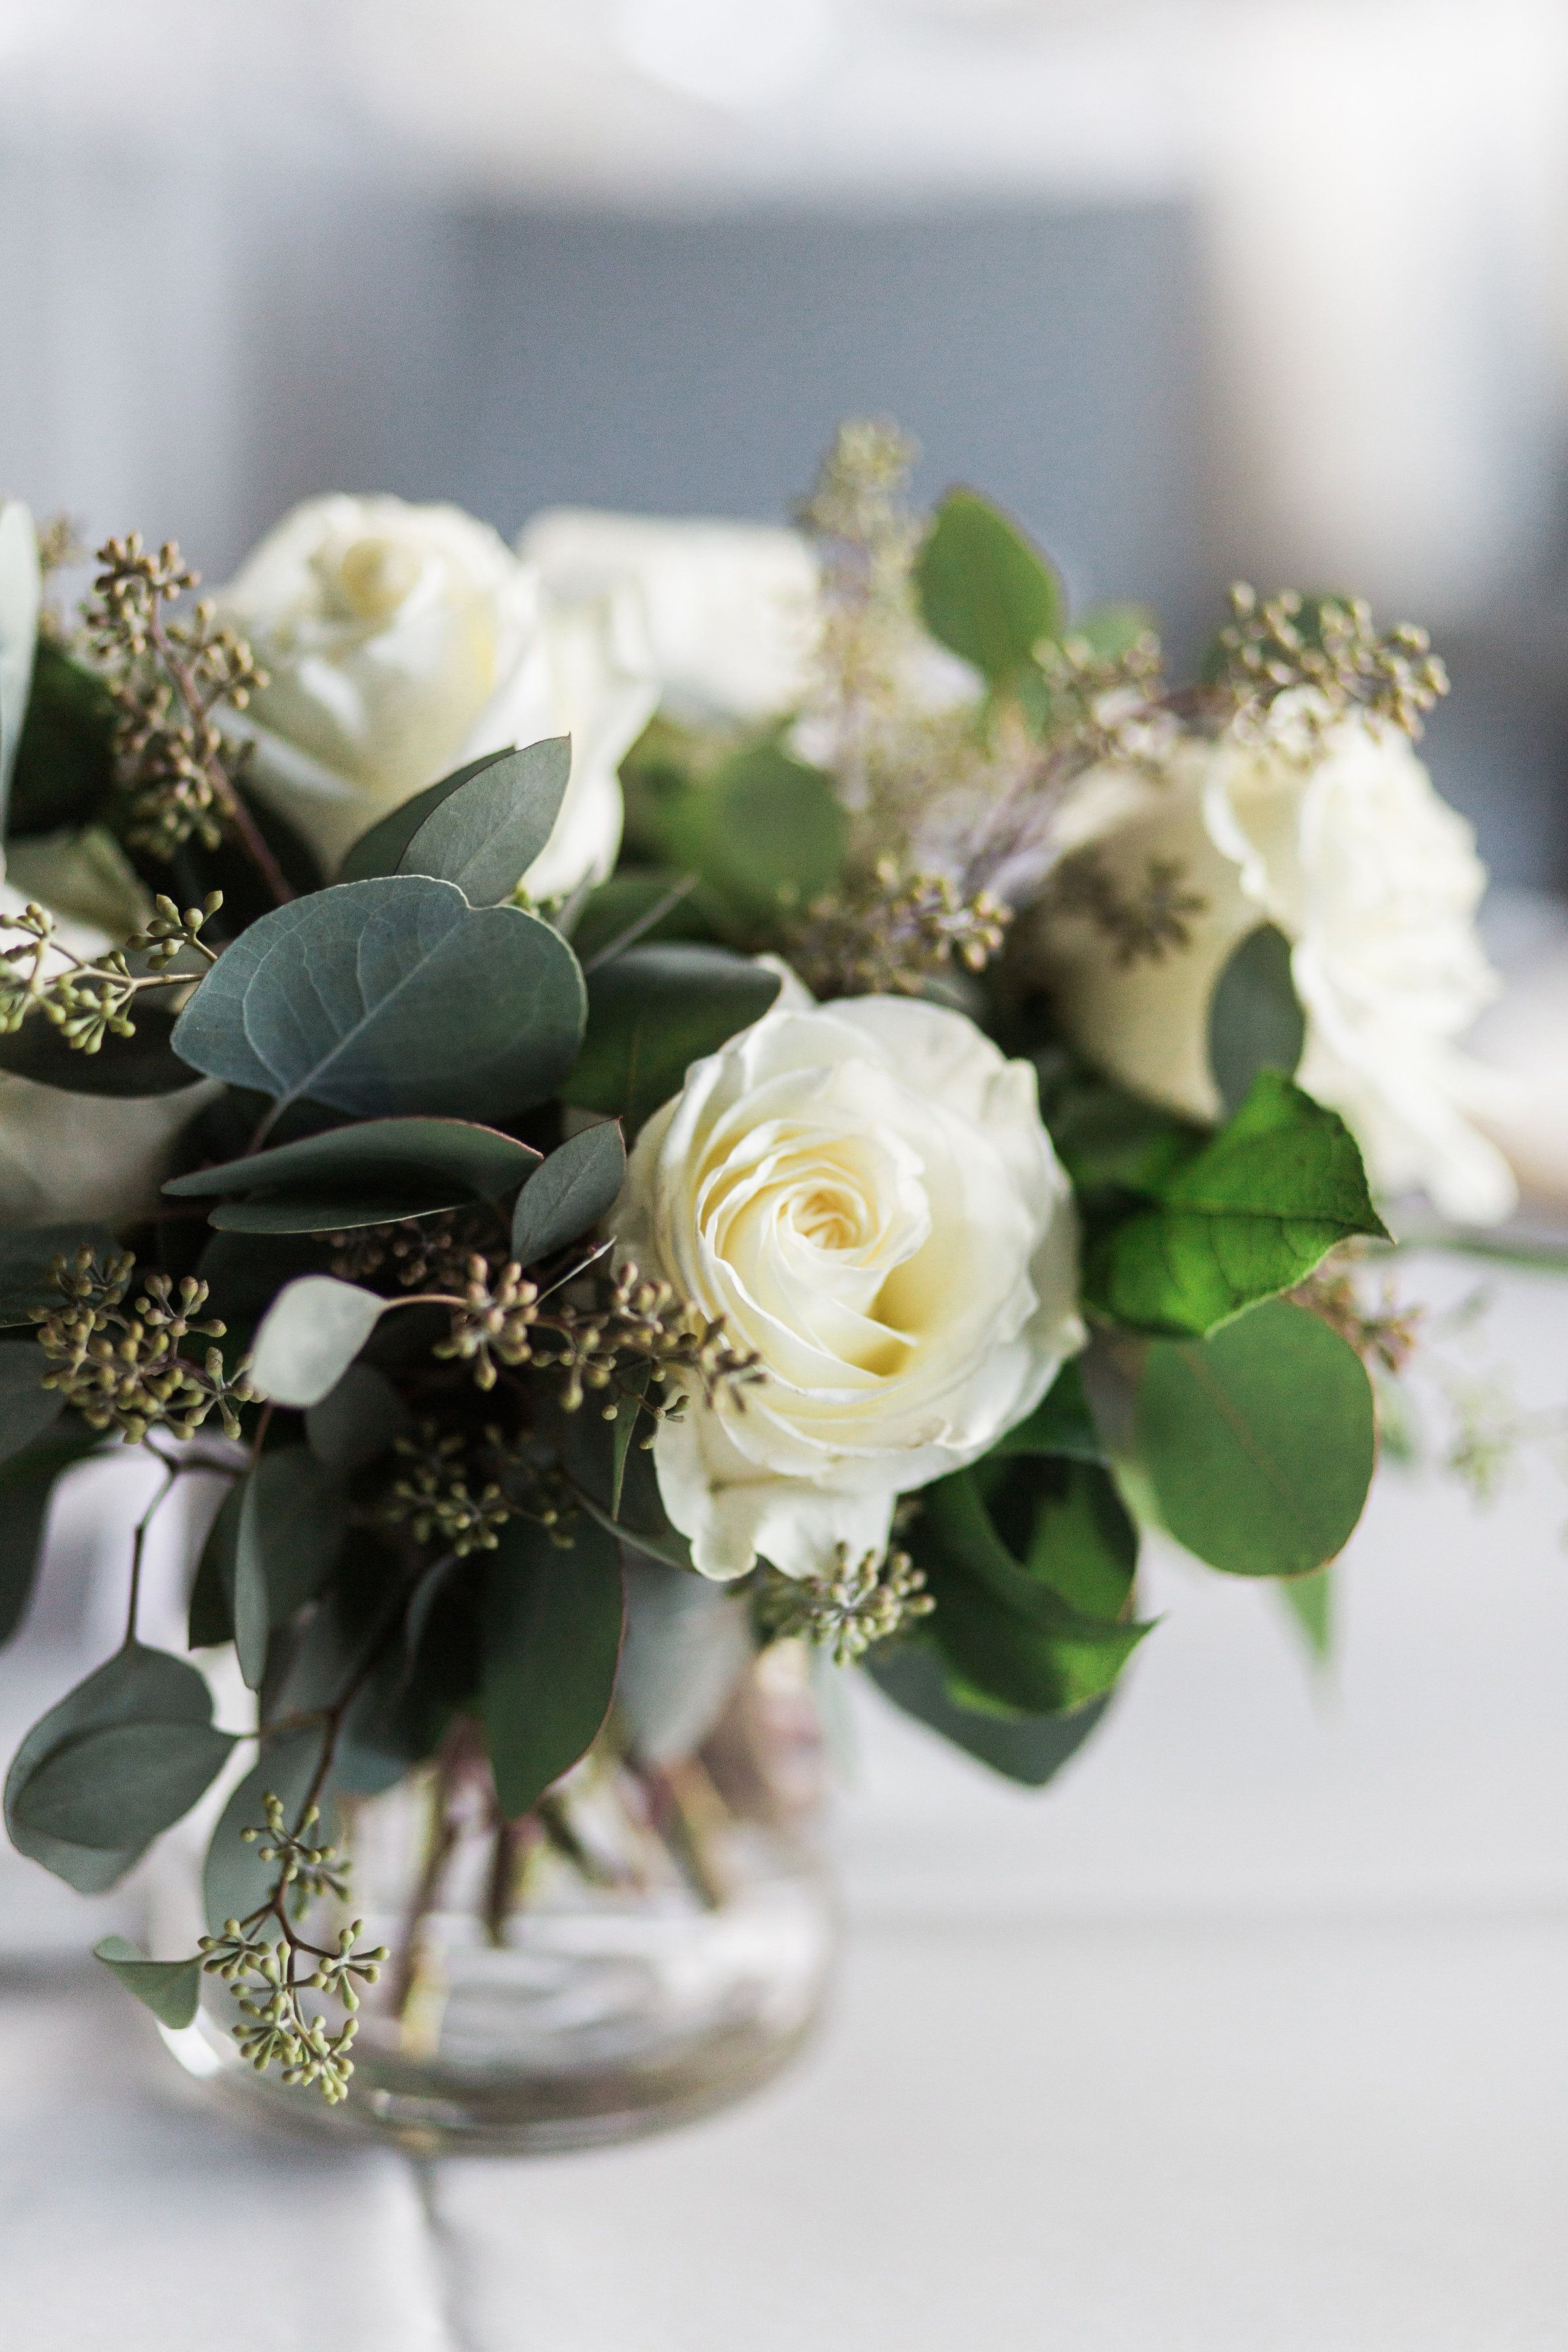 White roses and greenery in bloom weddings pinterest white centerpieces white roses and greenery mightylinksfo Image collections